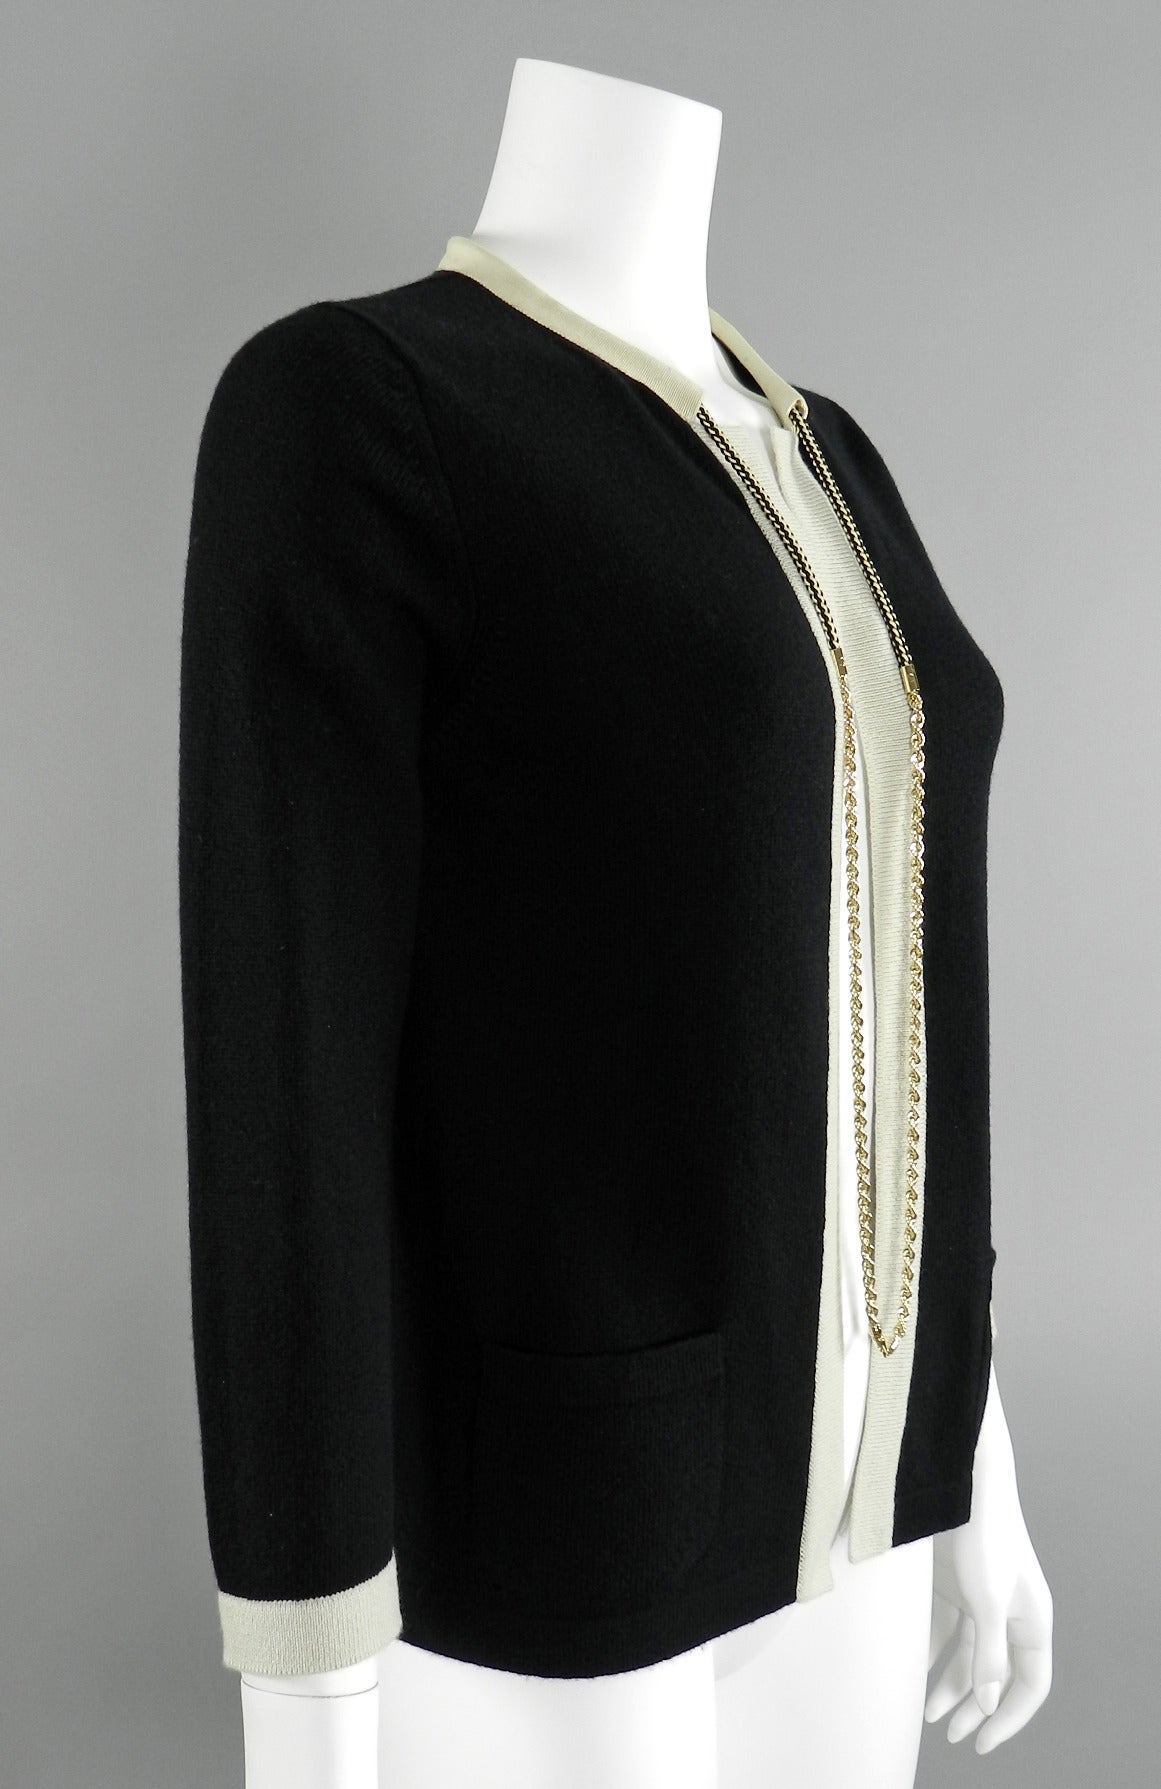 Chanel 11P Black Cashmere Cardigan with Gold Chain 2